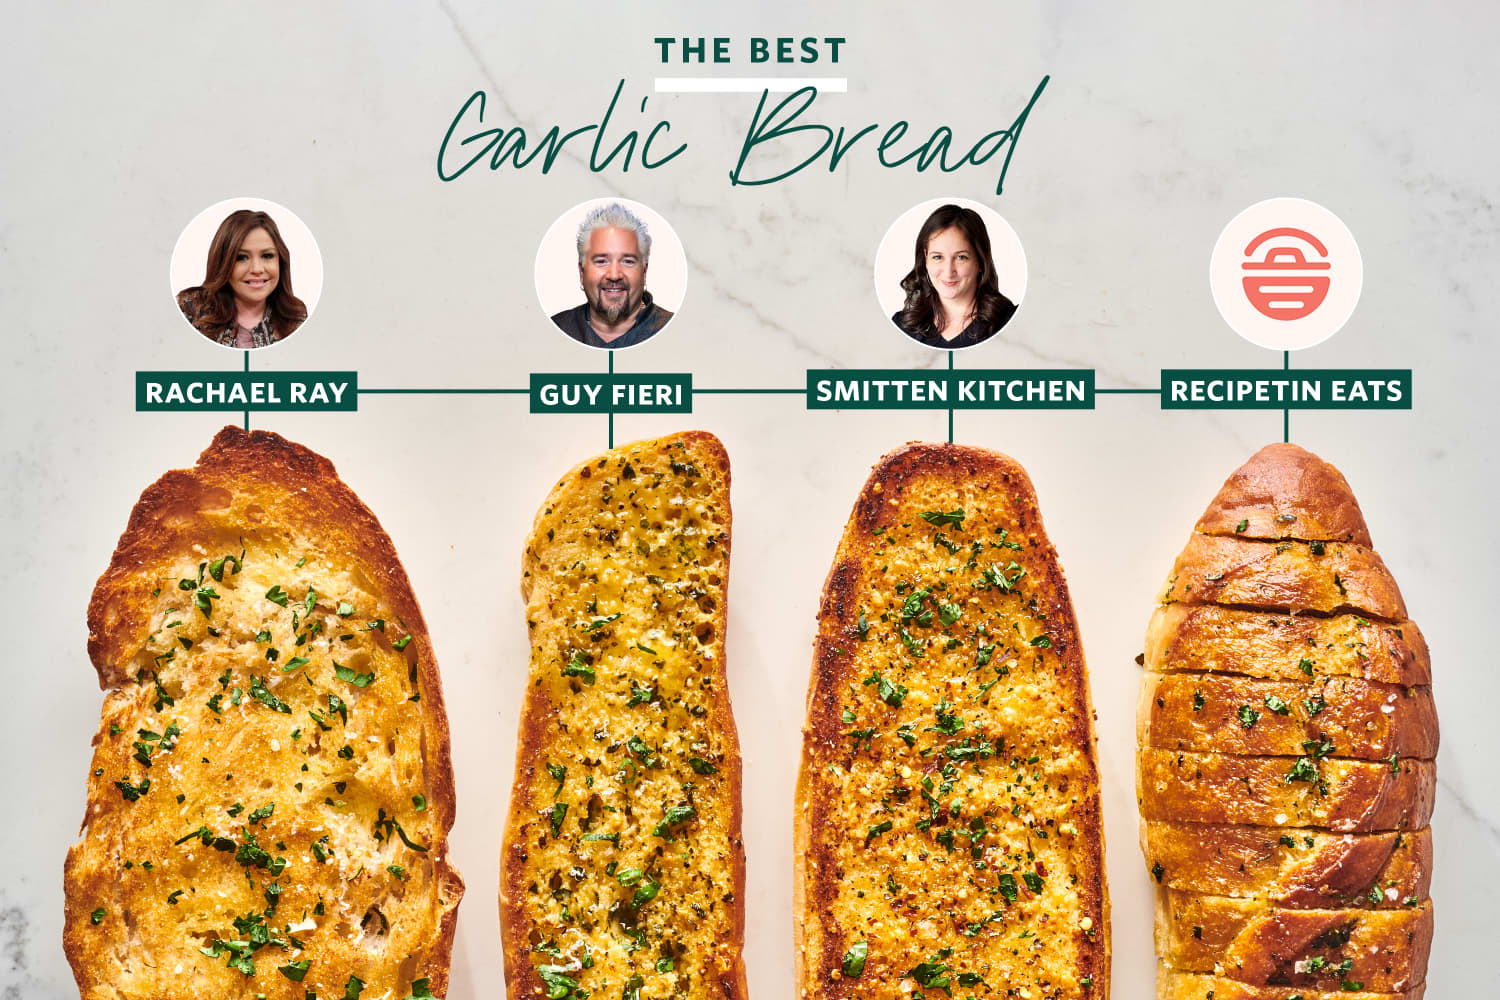 We Tested 4 Famous Garlic Bread Recipes and the Winner Has Never Been So Clear